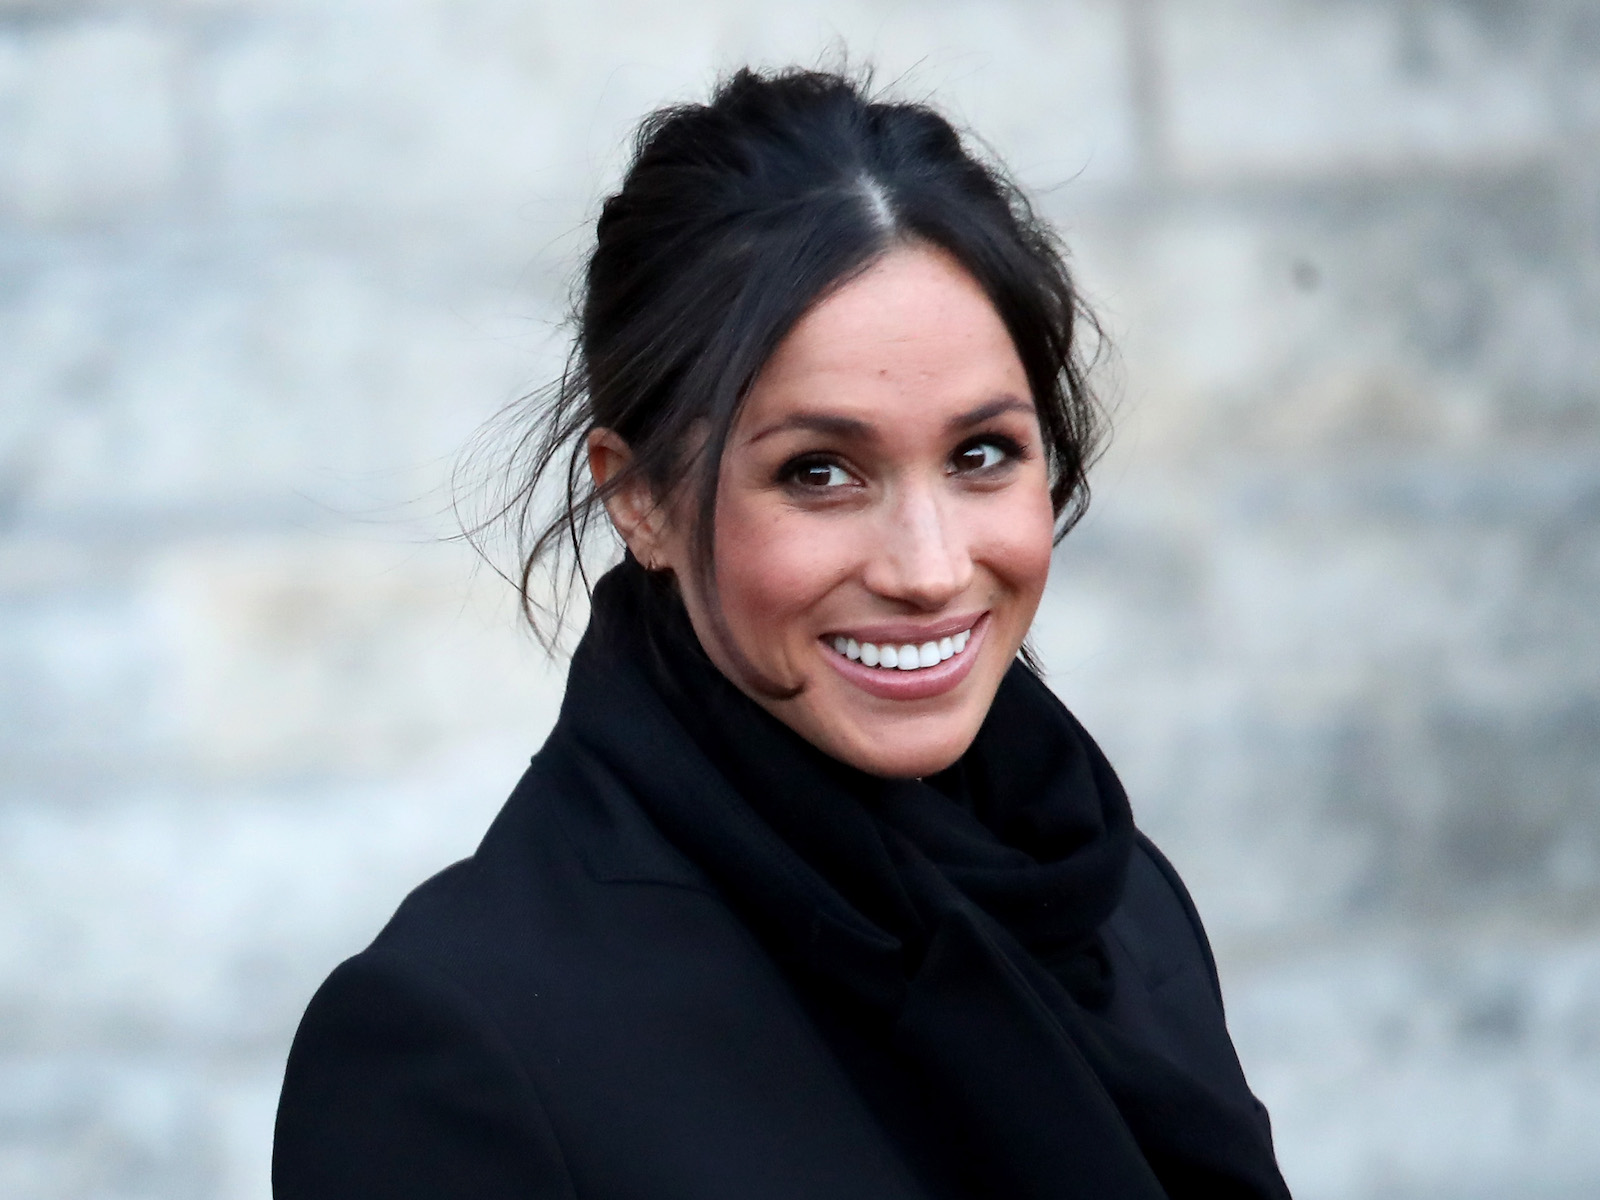 Meghan Markle Almost Started a Candy Company Before Meeting Prince Harry